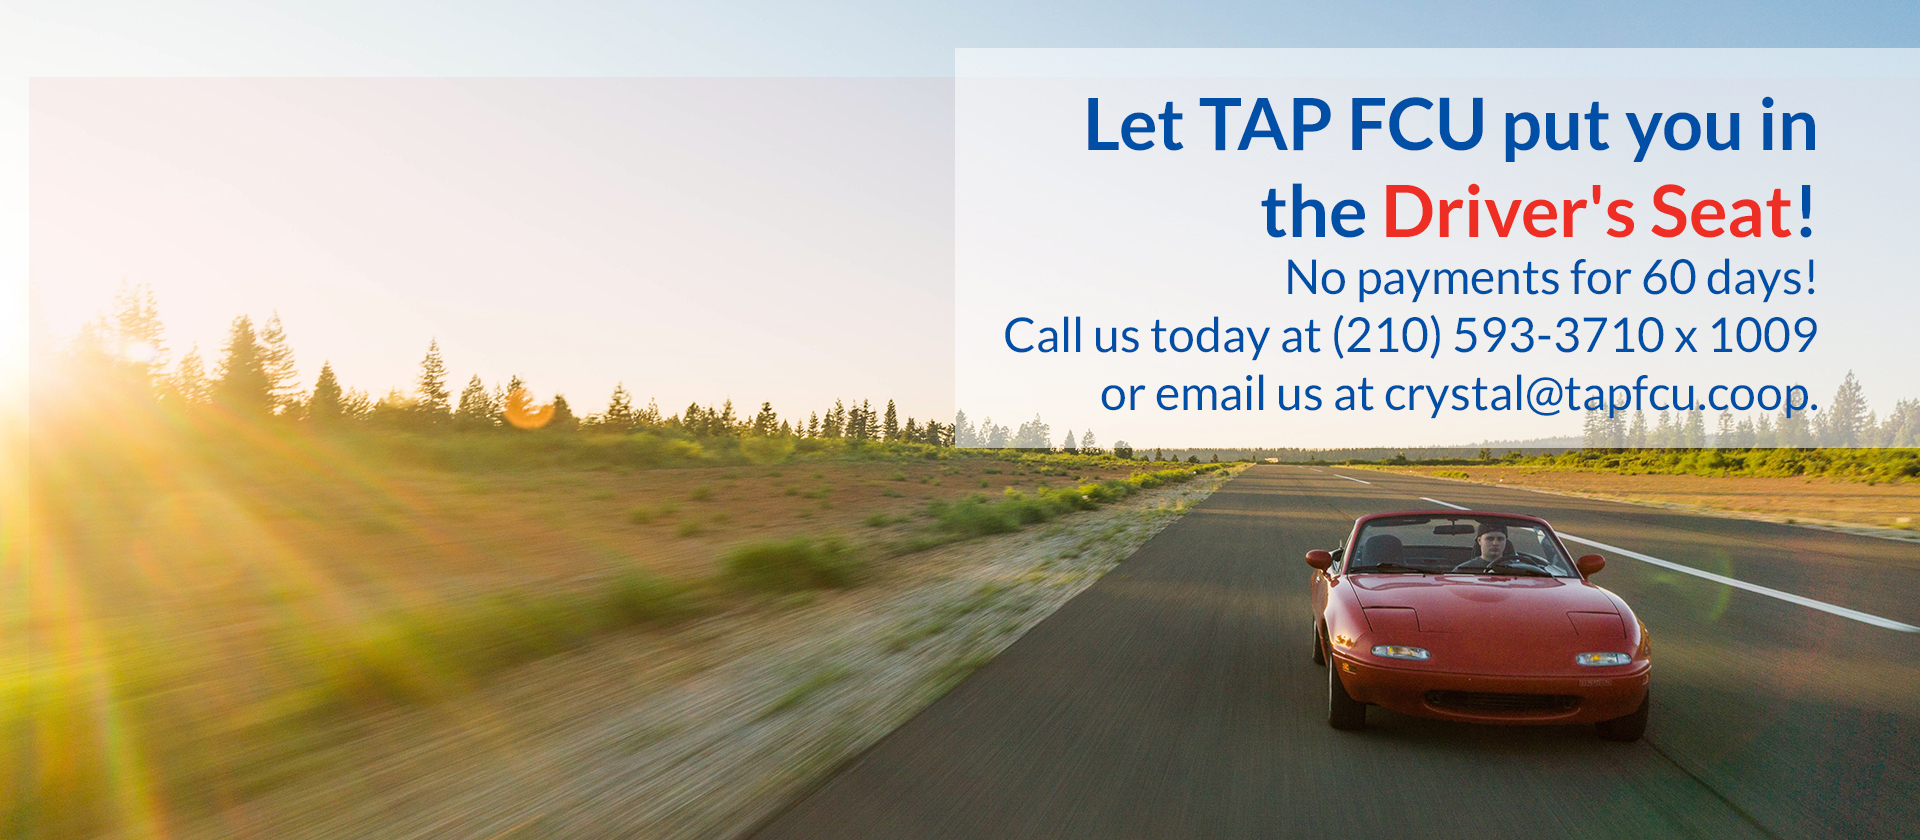 Let TAP FCU put you in the Driver's Seat! No payments for 60 days! Call us today at 210-593-3710 x 1009 or email us at crystal@tapfcu.coop.